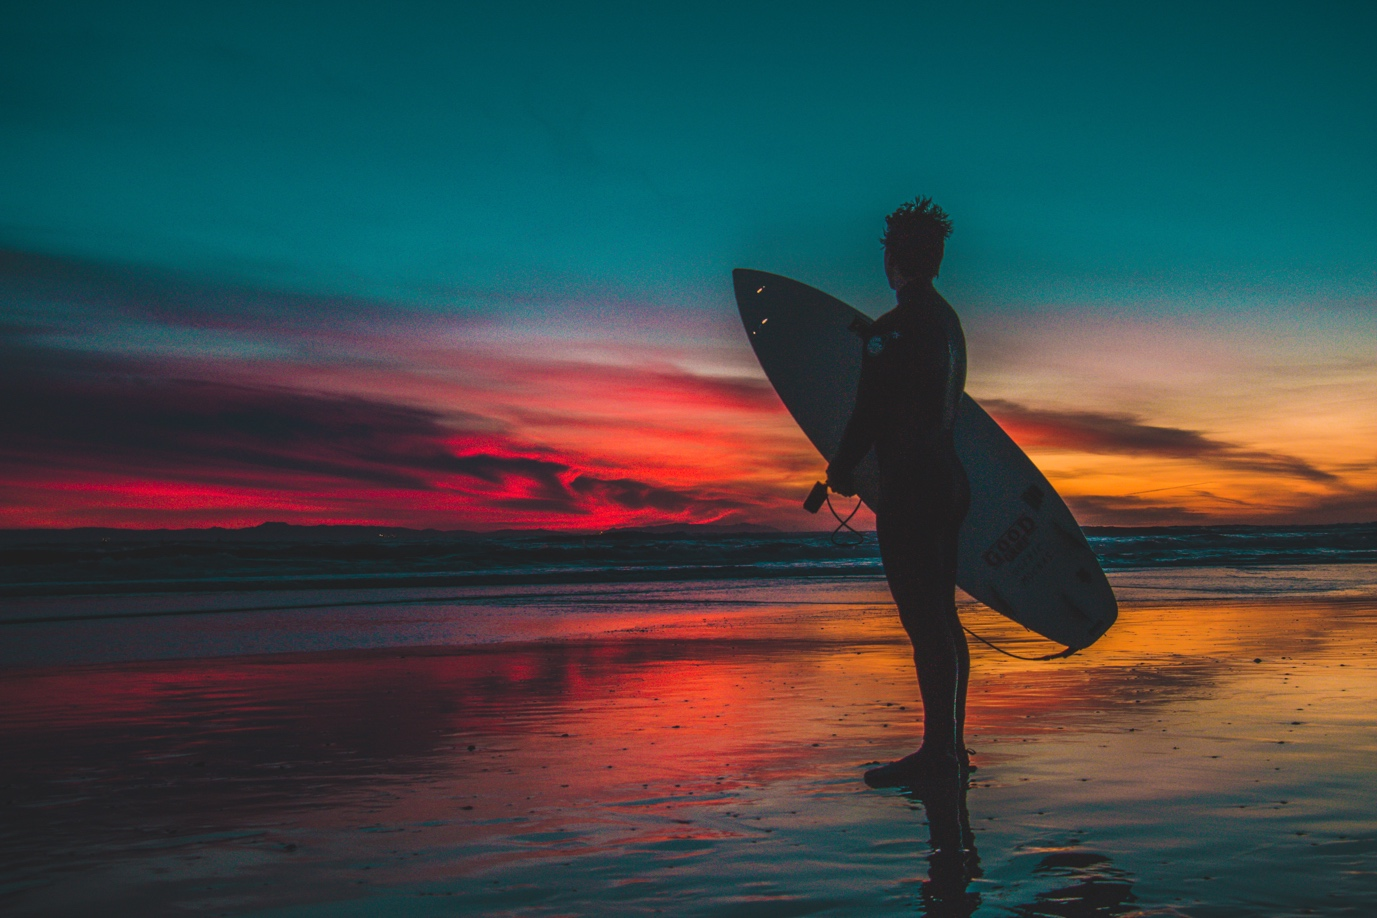 A person carrying a surf board walking on a beach  Description automatically generated